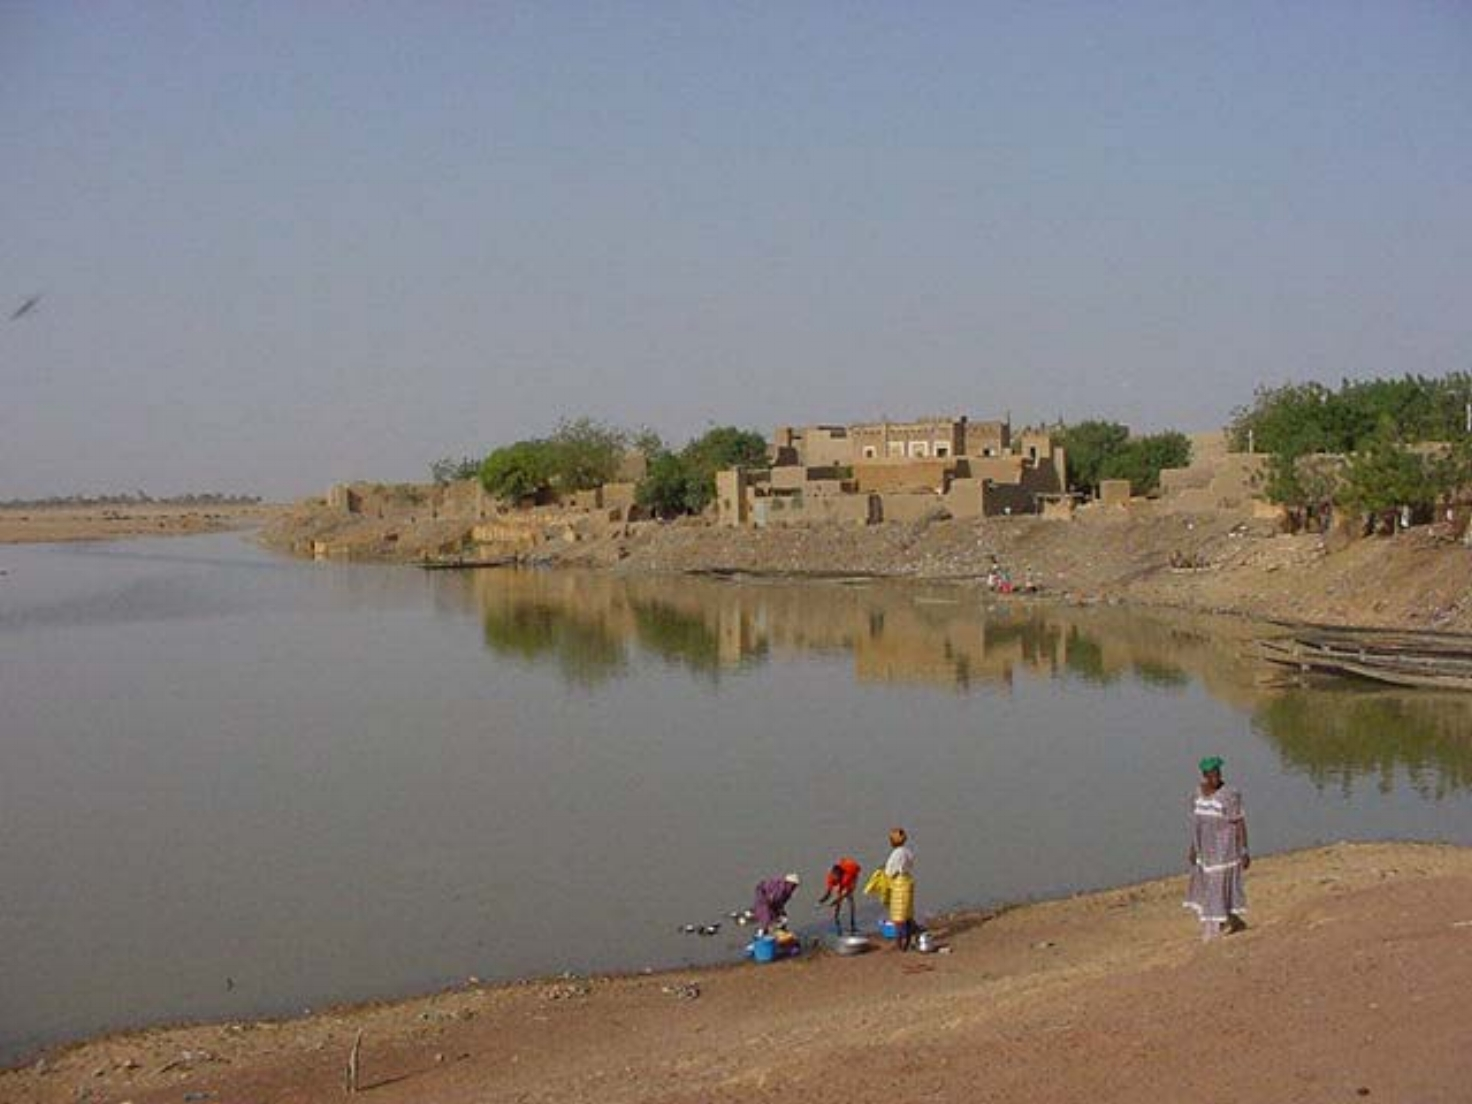 Washing in the Bani River